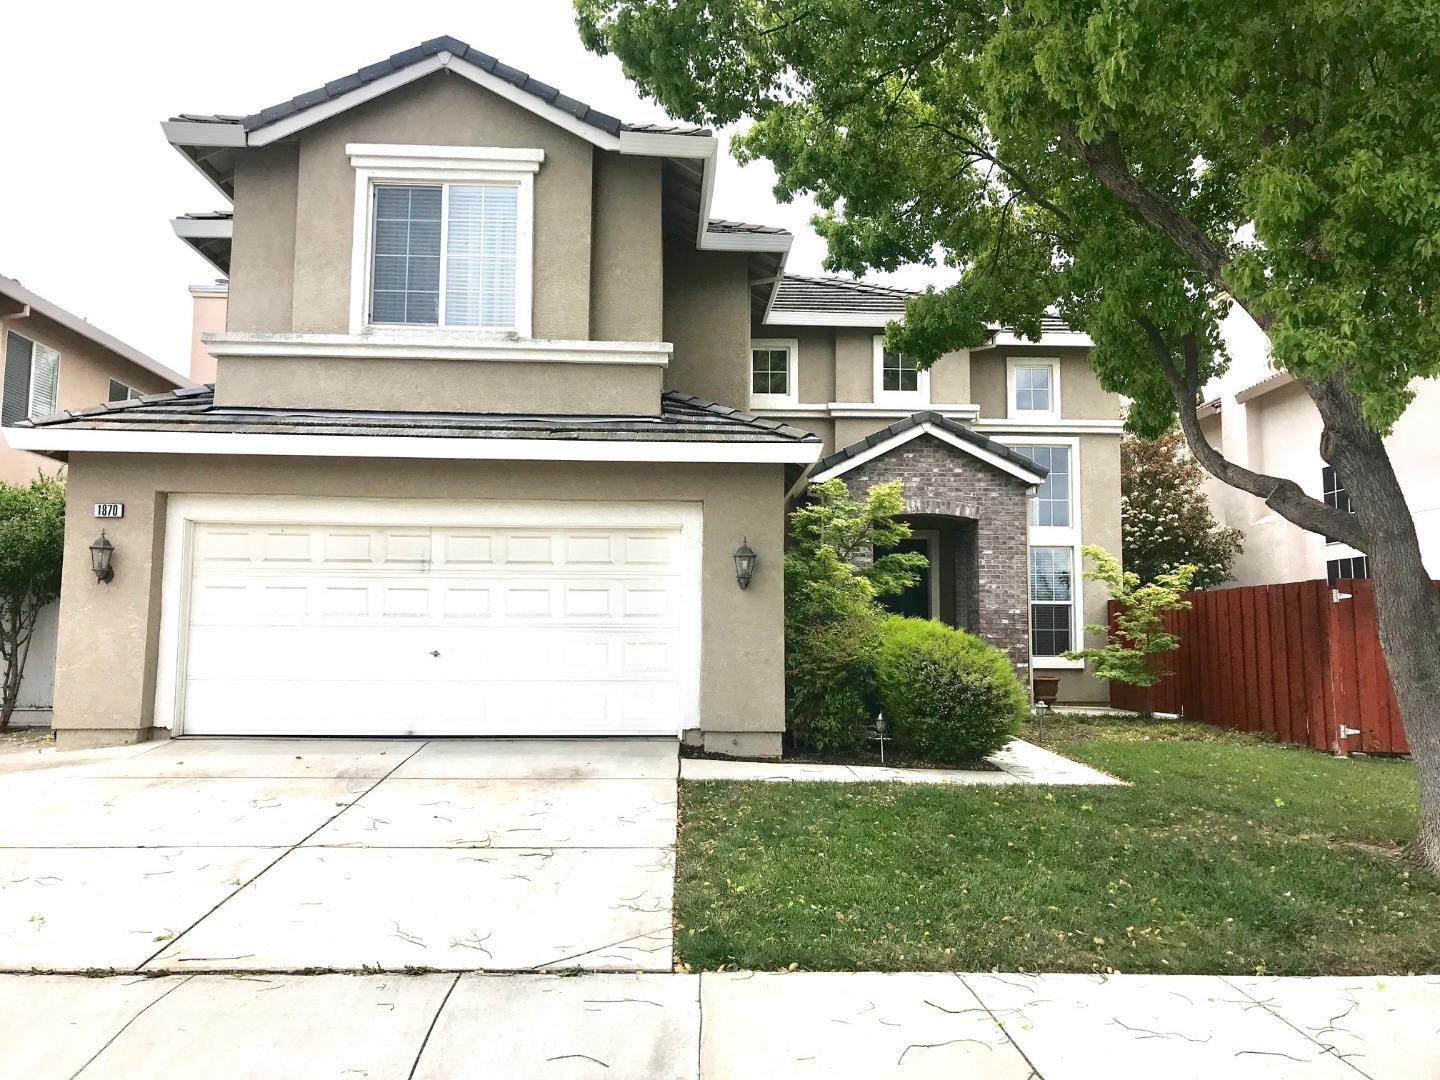 Image for 1870 Persimmon Way, <br>Tracy 95376